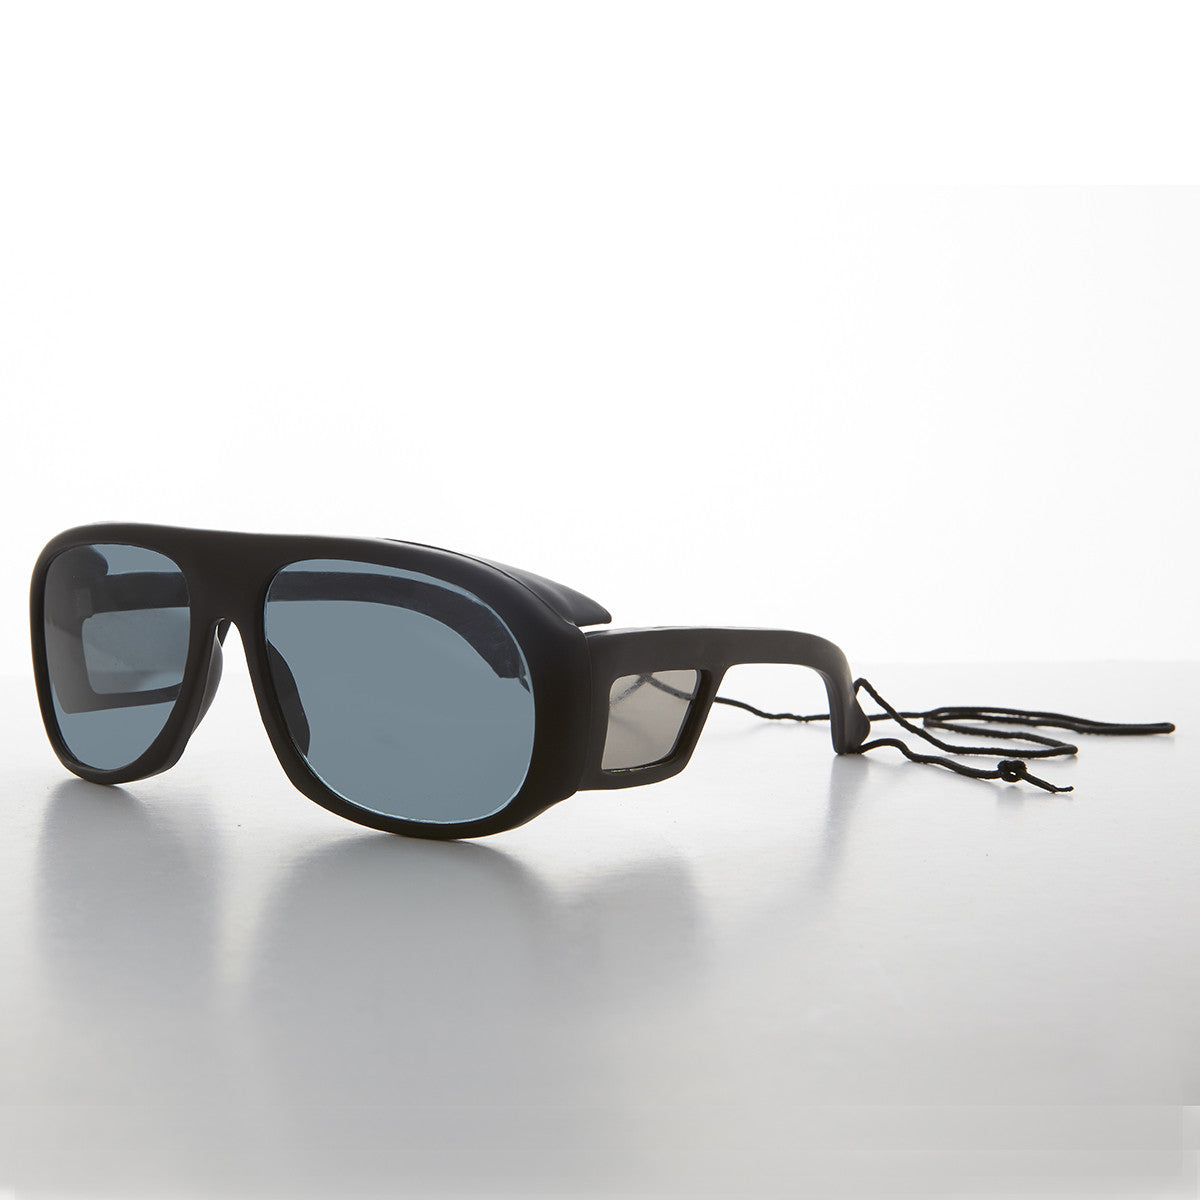 polarized fishing sunglasses with glass lens and side shields